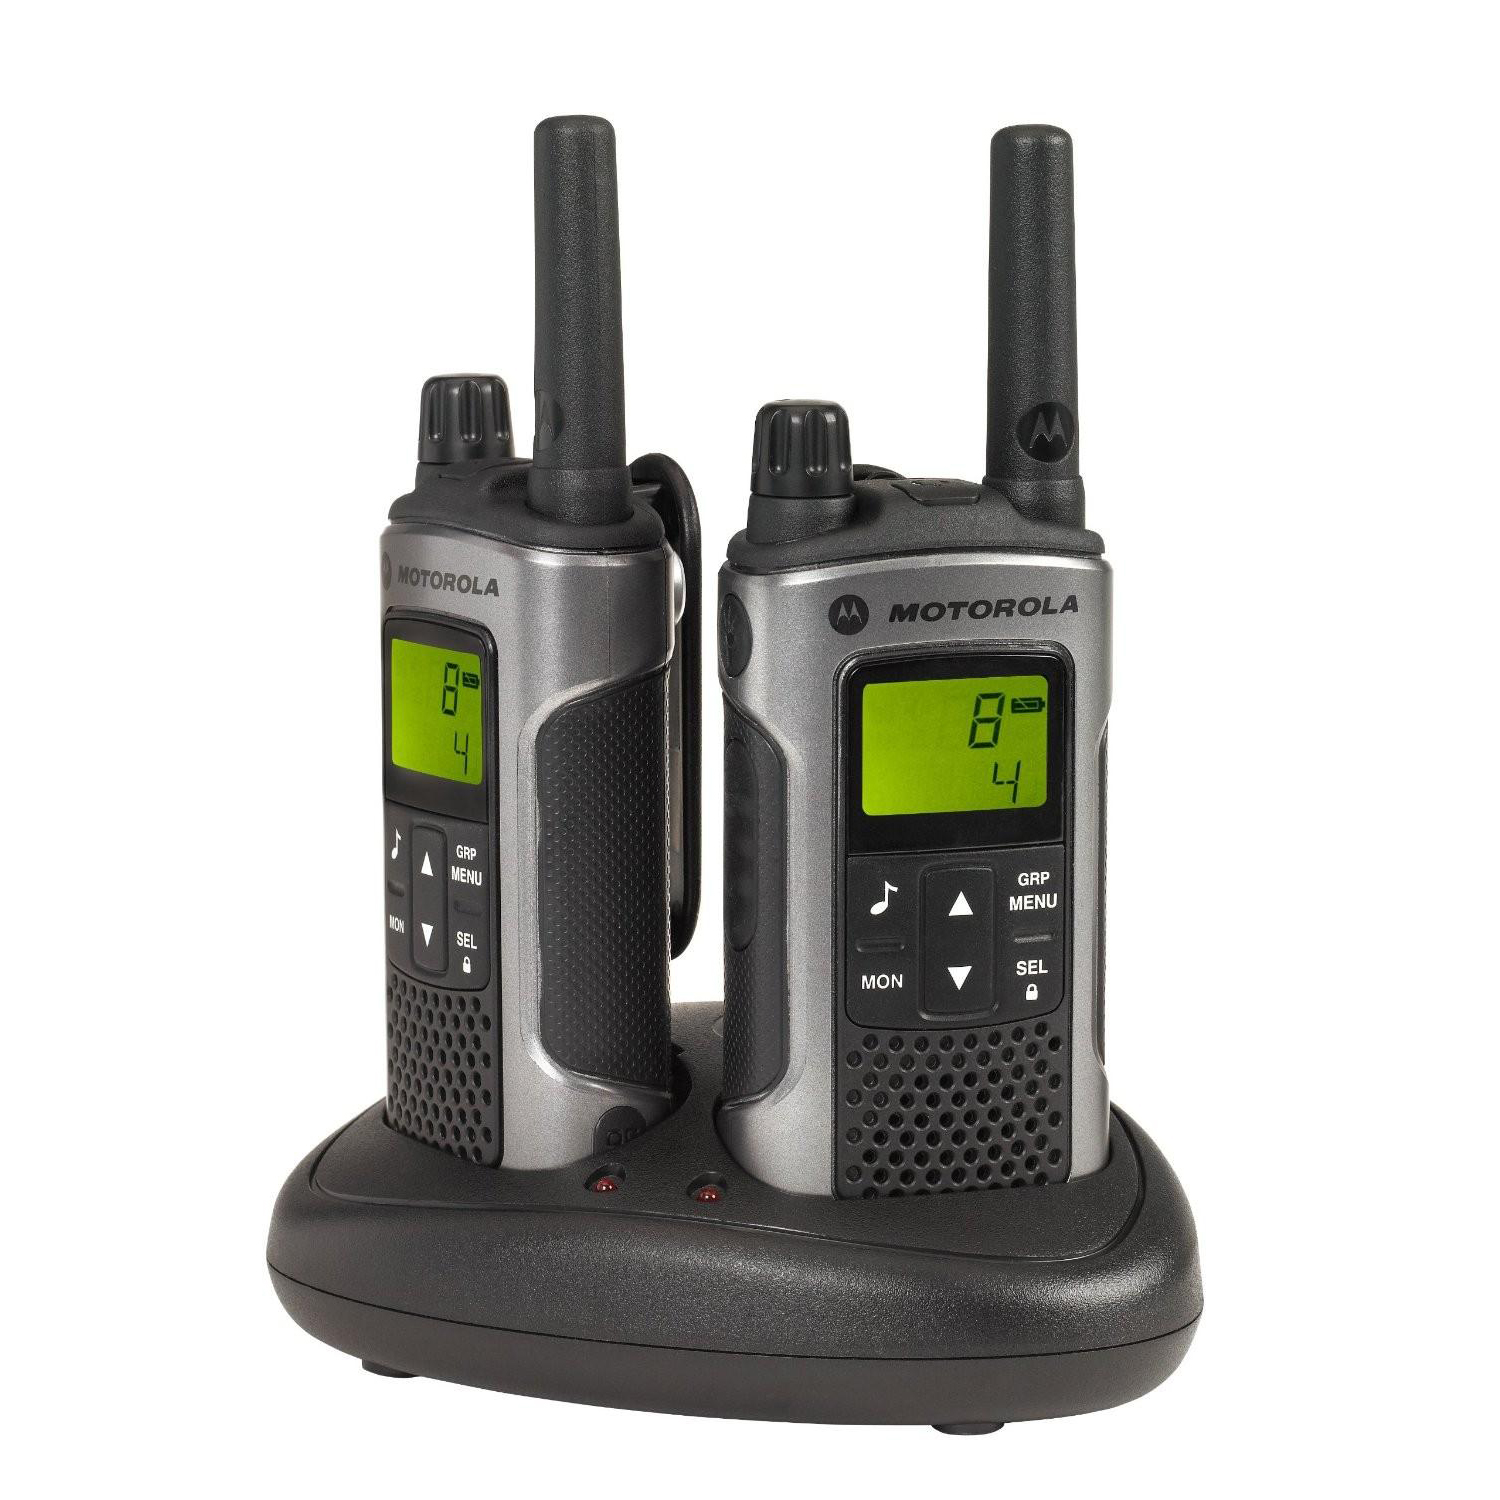 Motorola TLKR T80 2-way Radios Band PMR446 8 Channels 121 Codes Range 10km Ref 50047 Pair